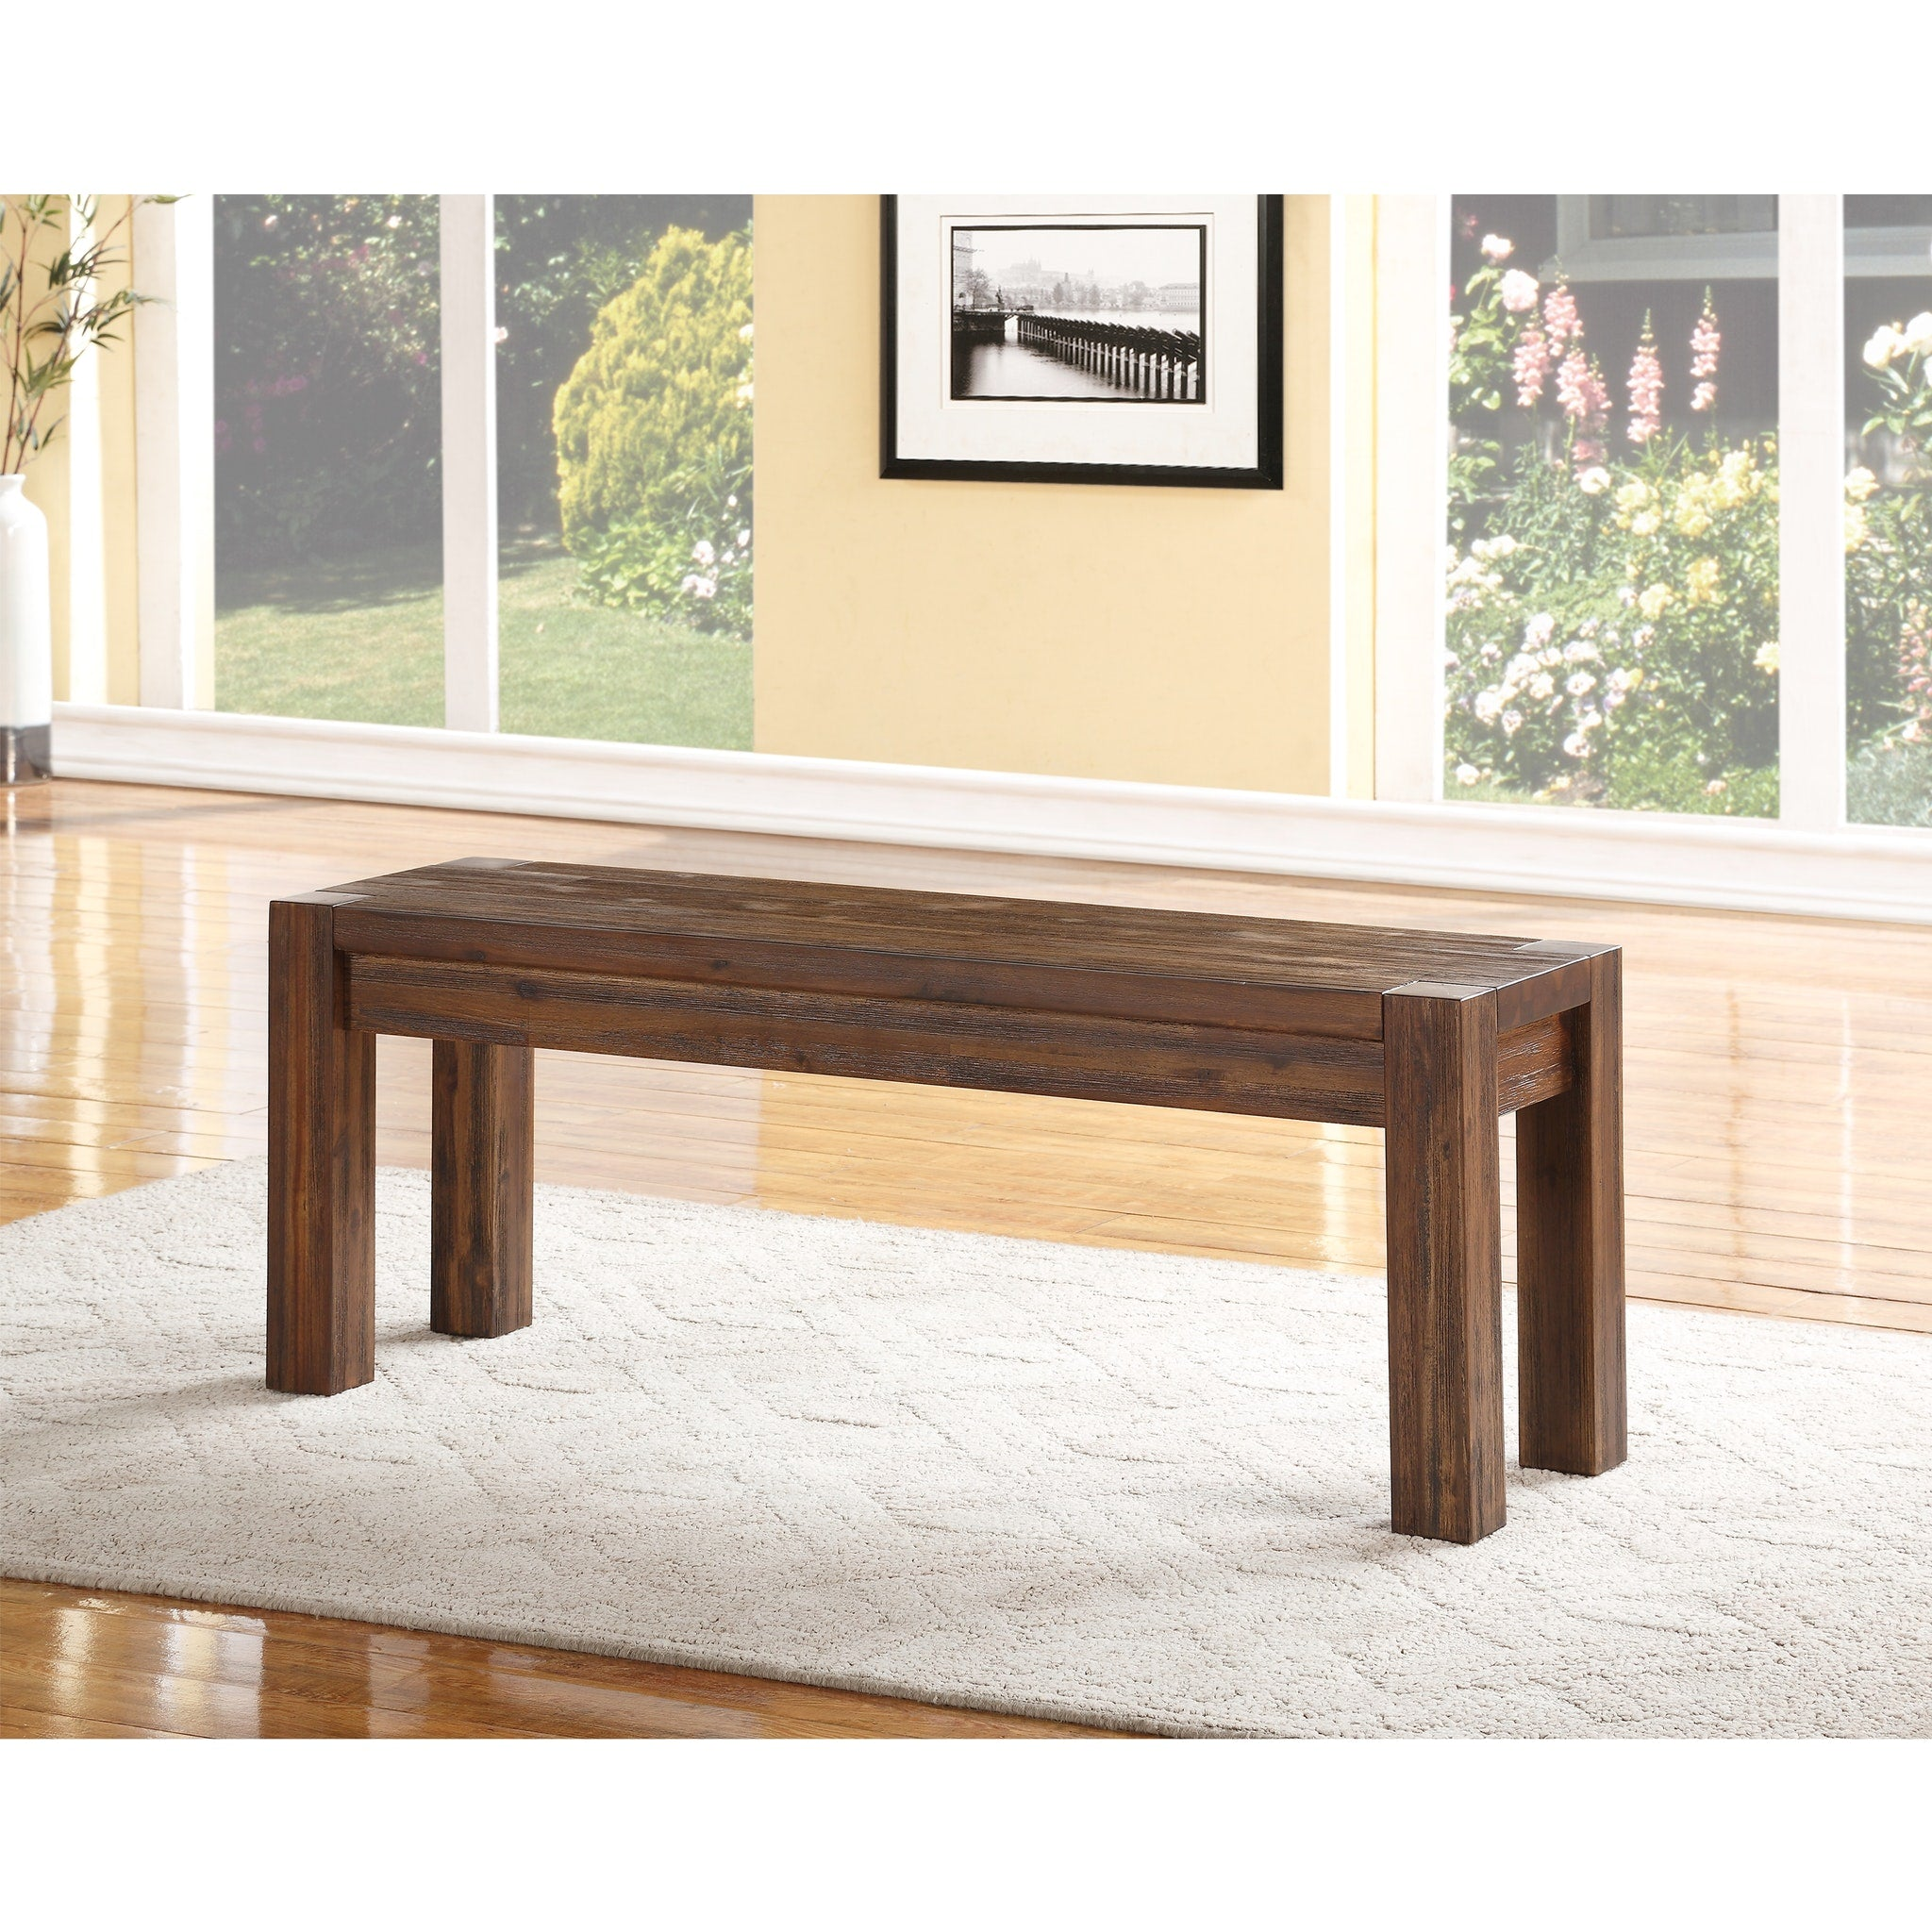 Meadow Solid wood Bench in Brick Brown